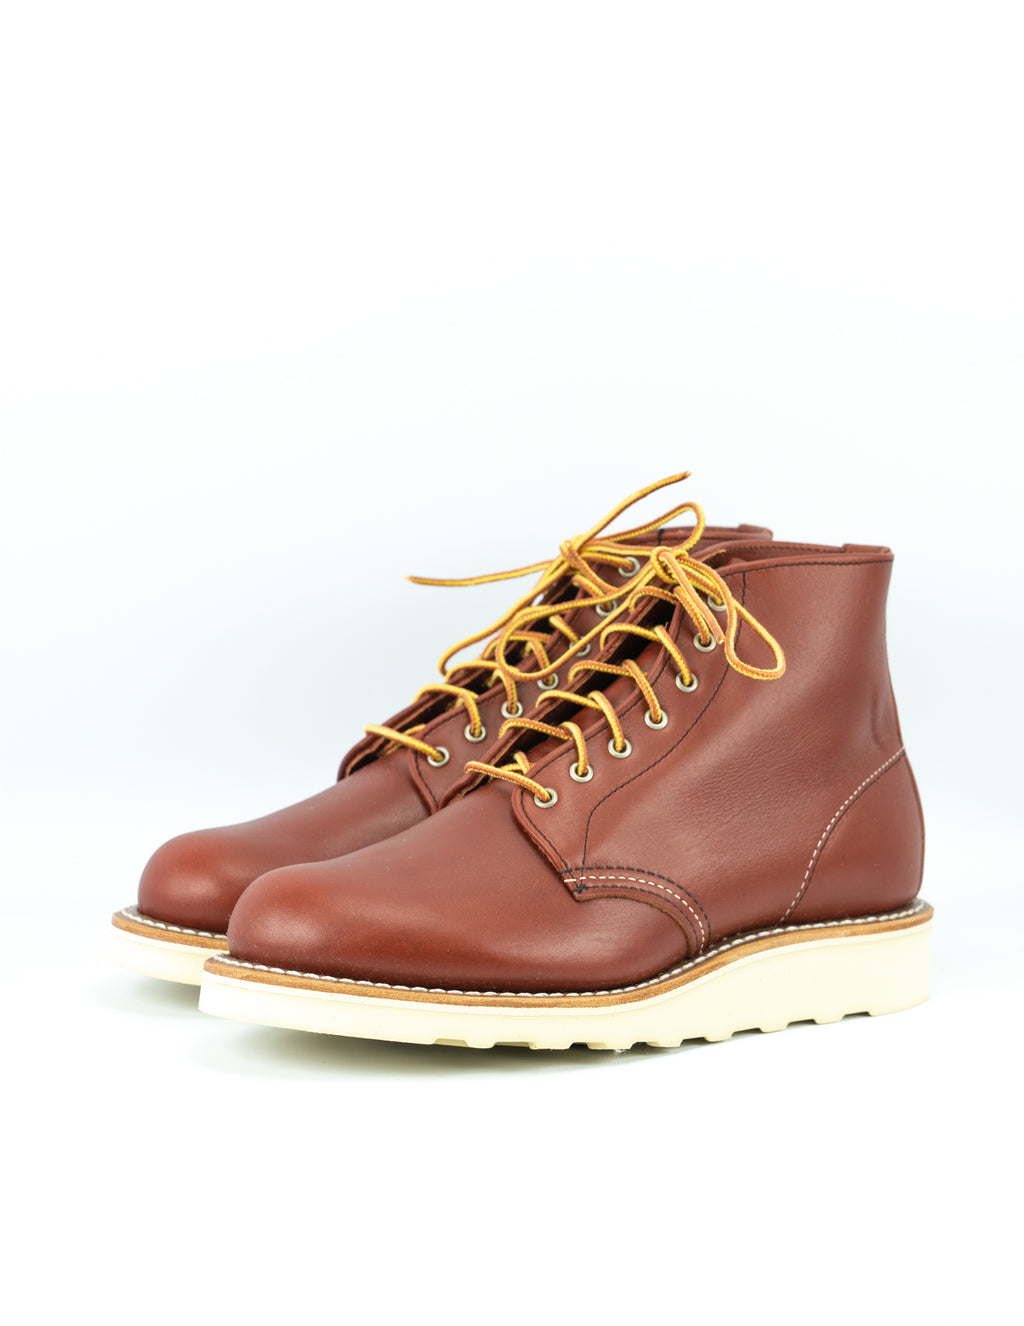 "Red Wing - 6"" Round"